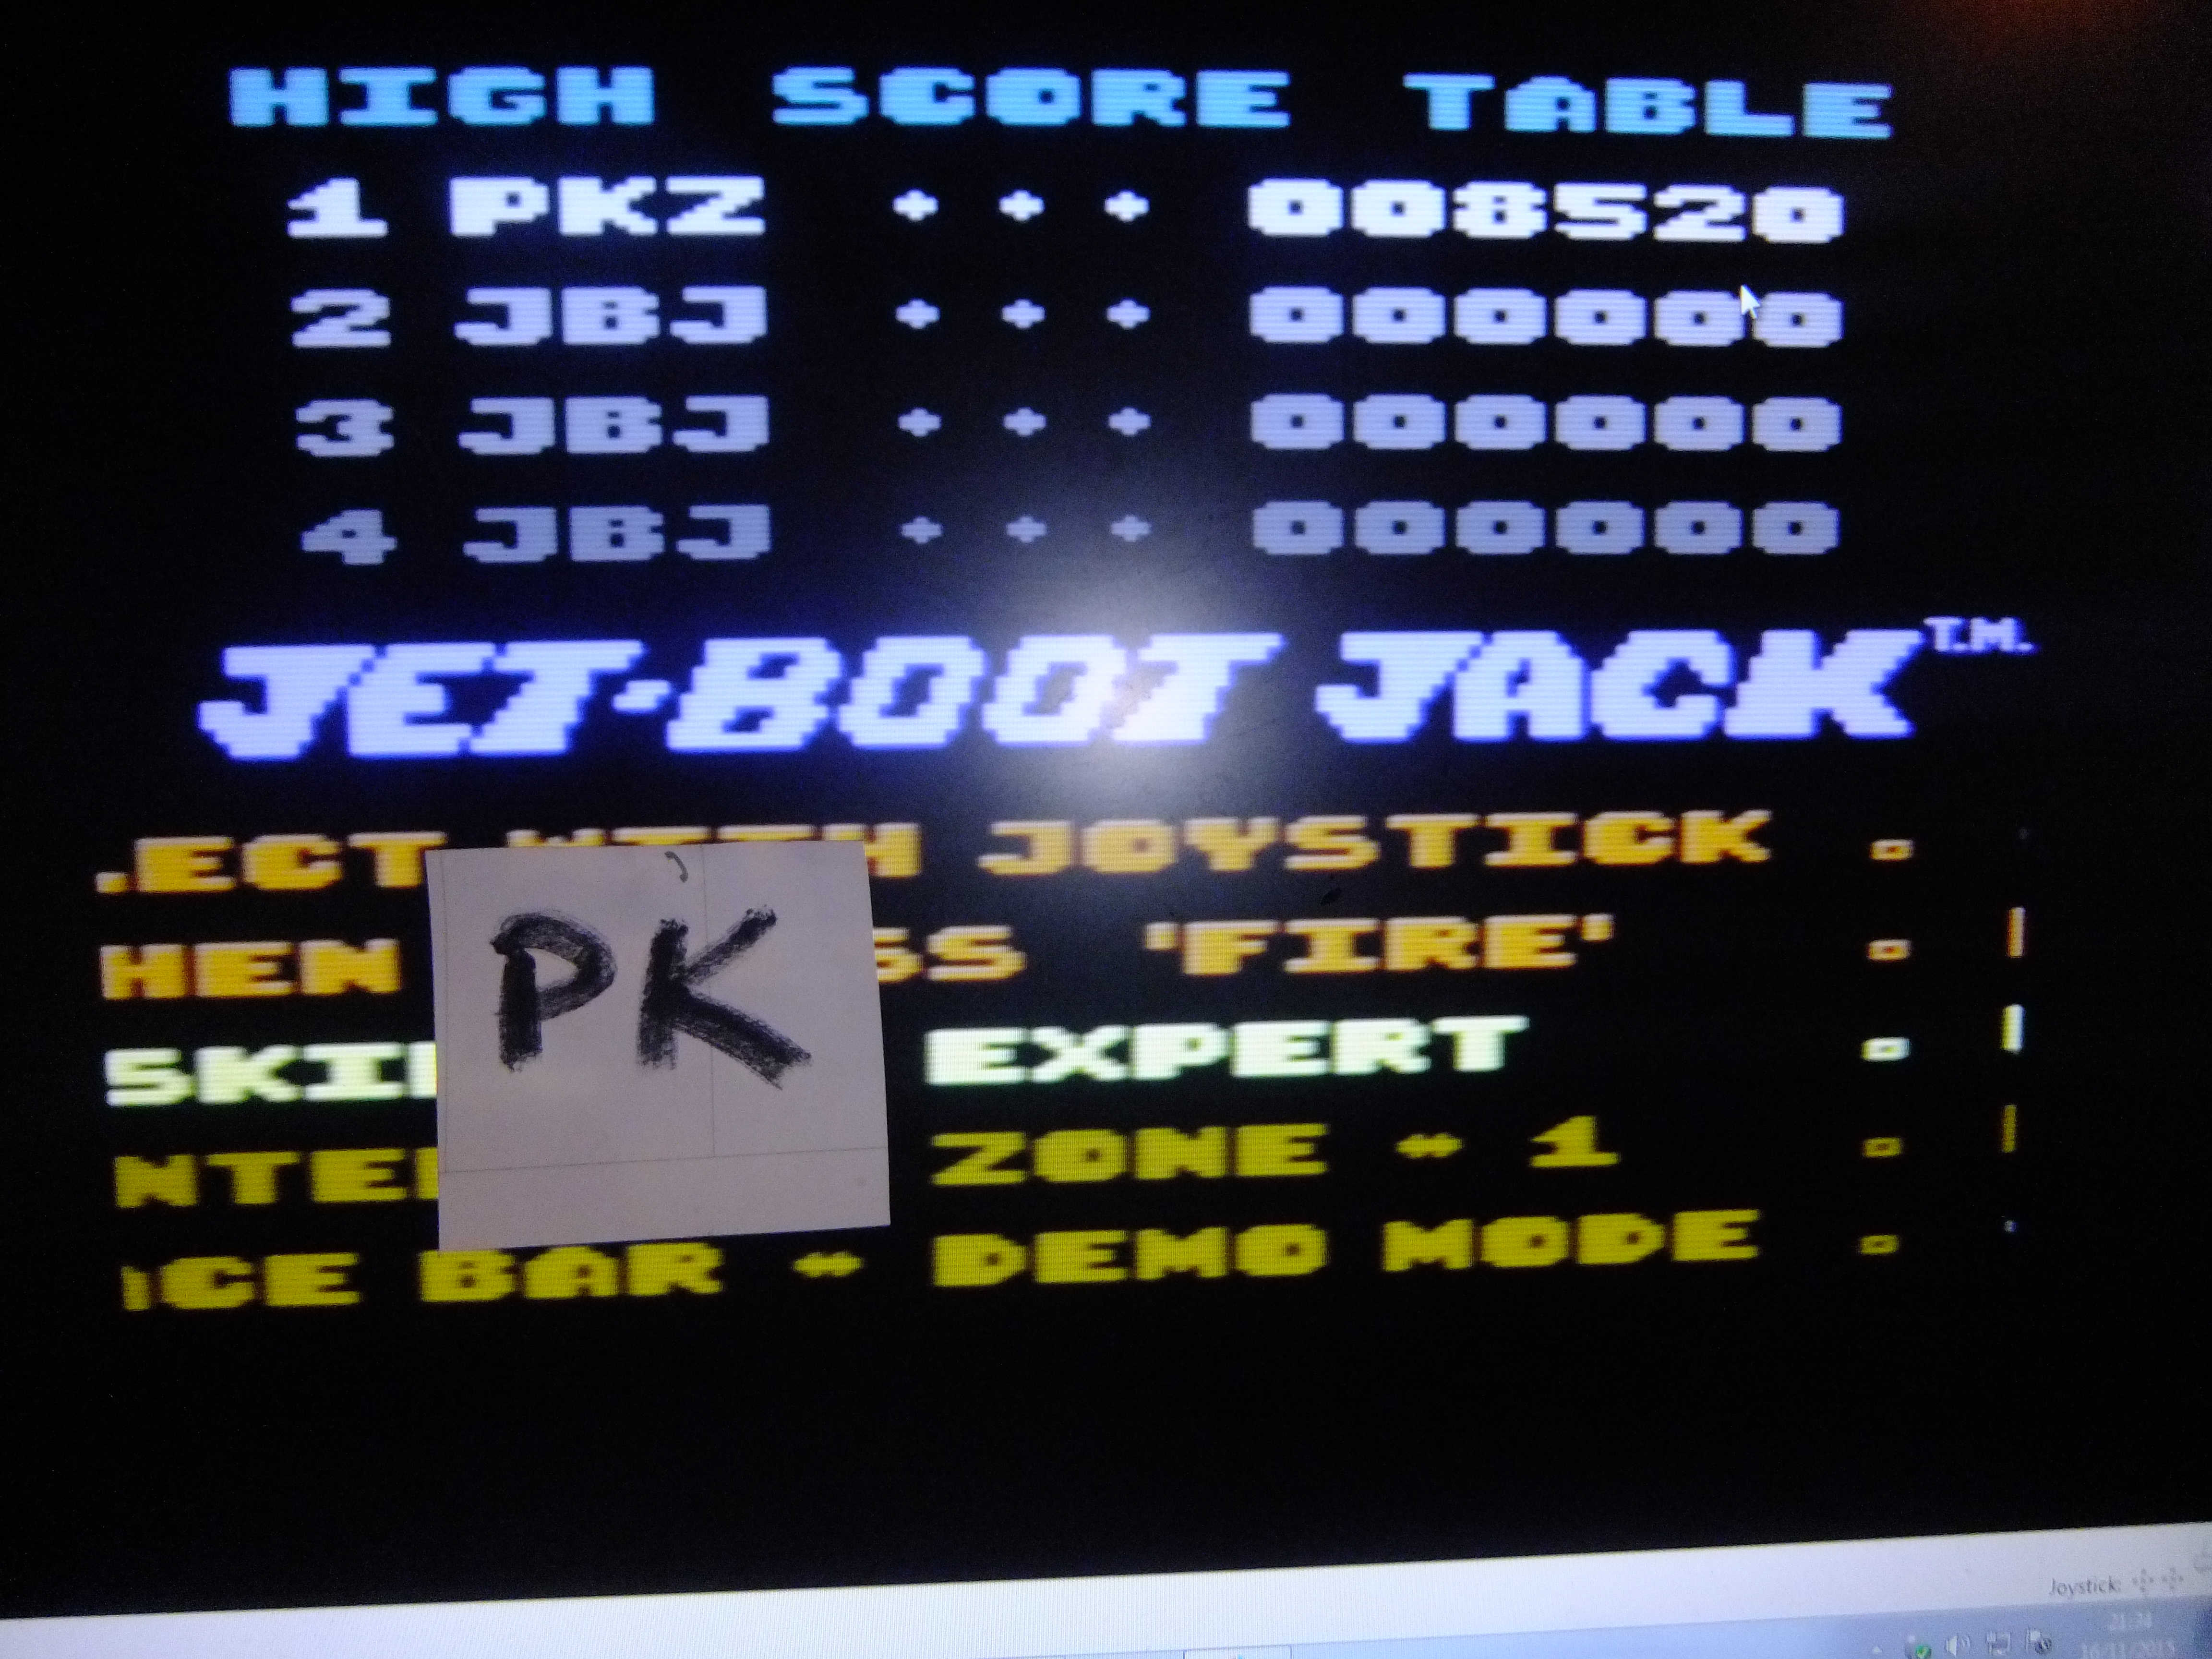 kernzy: The Legend Of Jet-Boot Jack [Expert] (Commodore 64 Emulated) 8,520 points on 2015-11-16 15:40:29